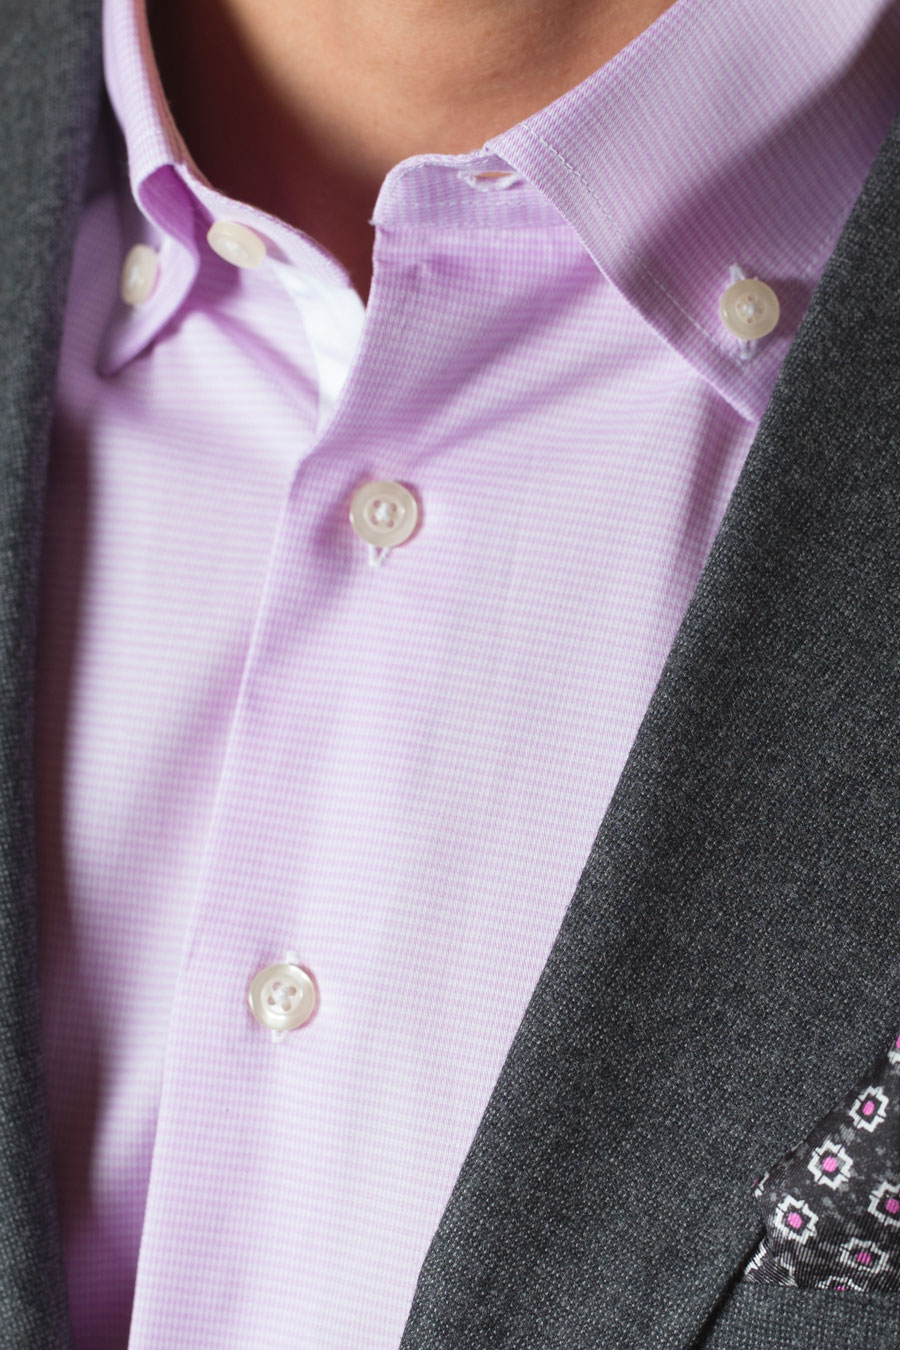 Lavender-Houndstooth-Custom-Tailored-Shirt-Button-down-COllar-White-Contrast-Placket-Charocal-Sportcoat-chicago-900.jpg